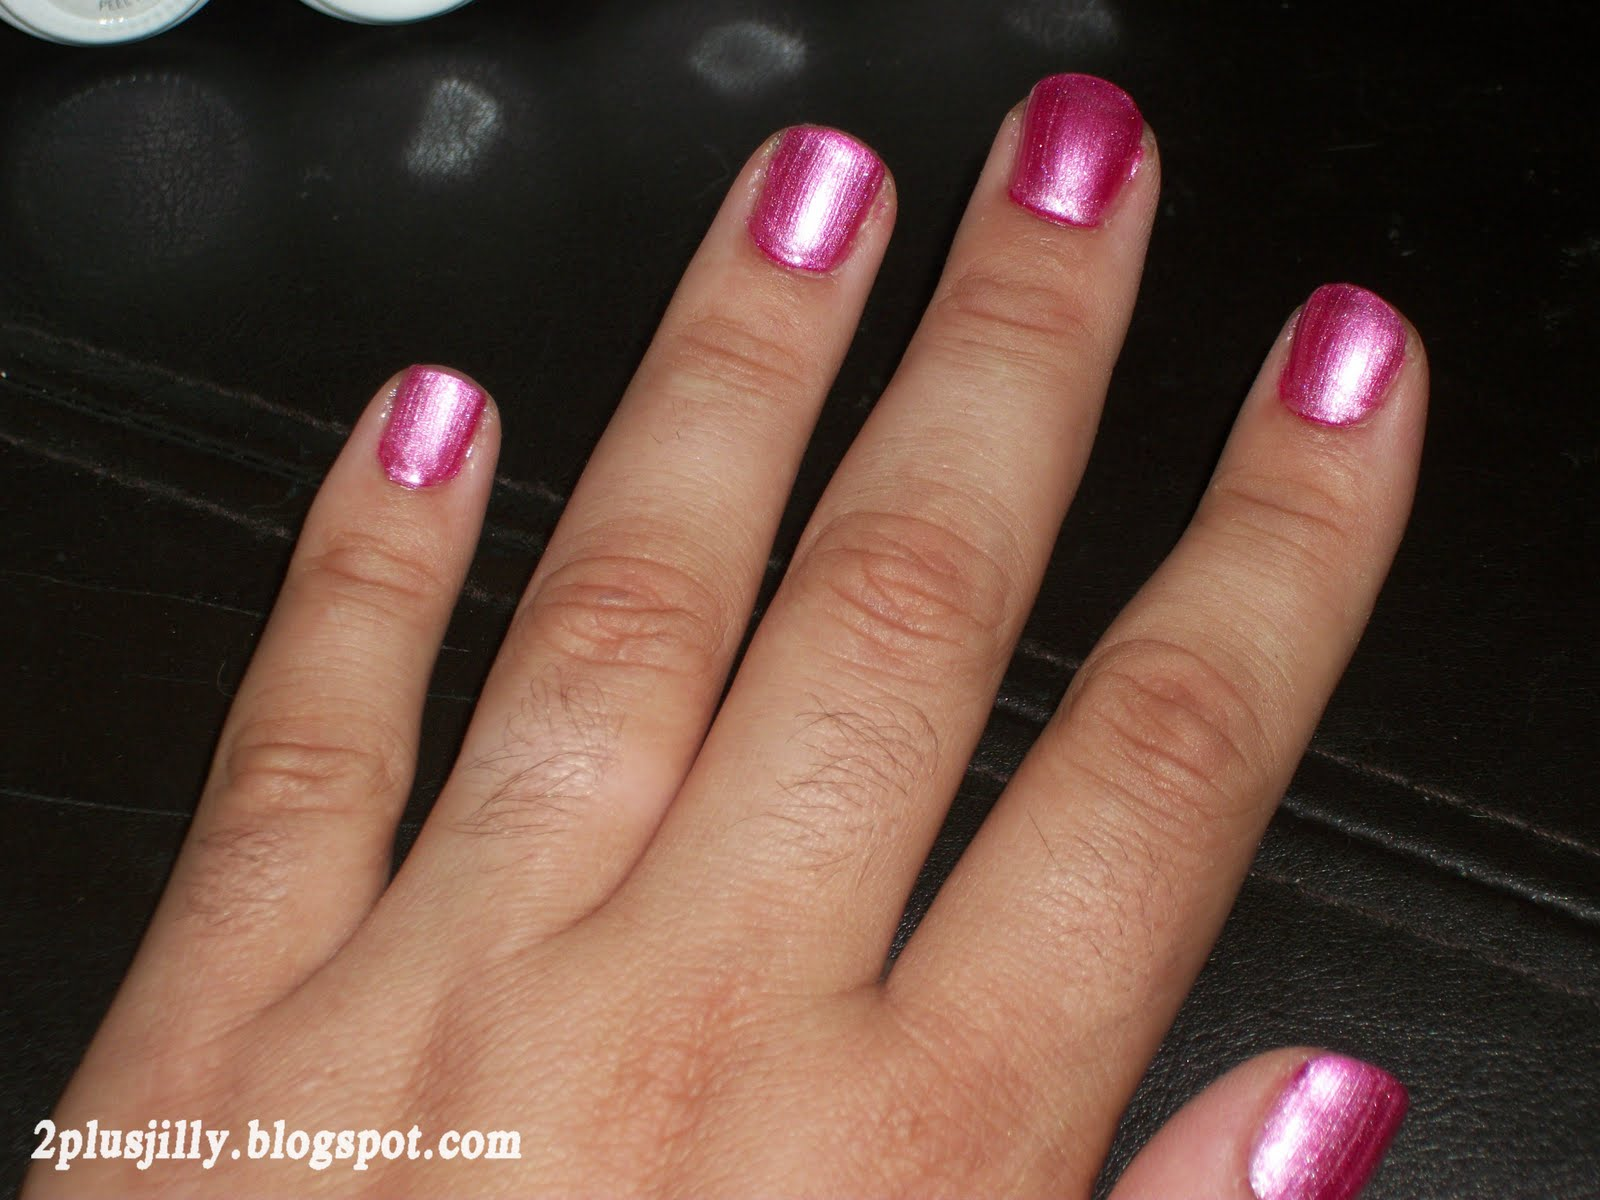 Two Plus Jilly: At Home Gel Nails